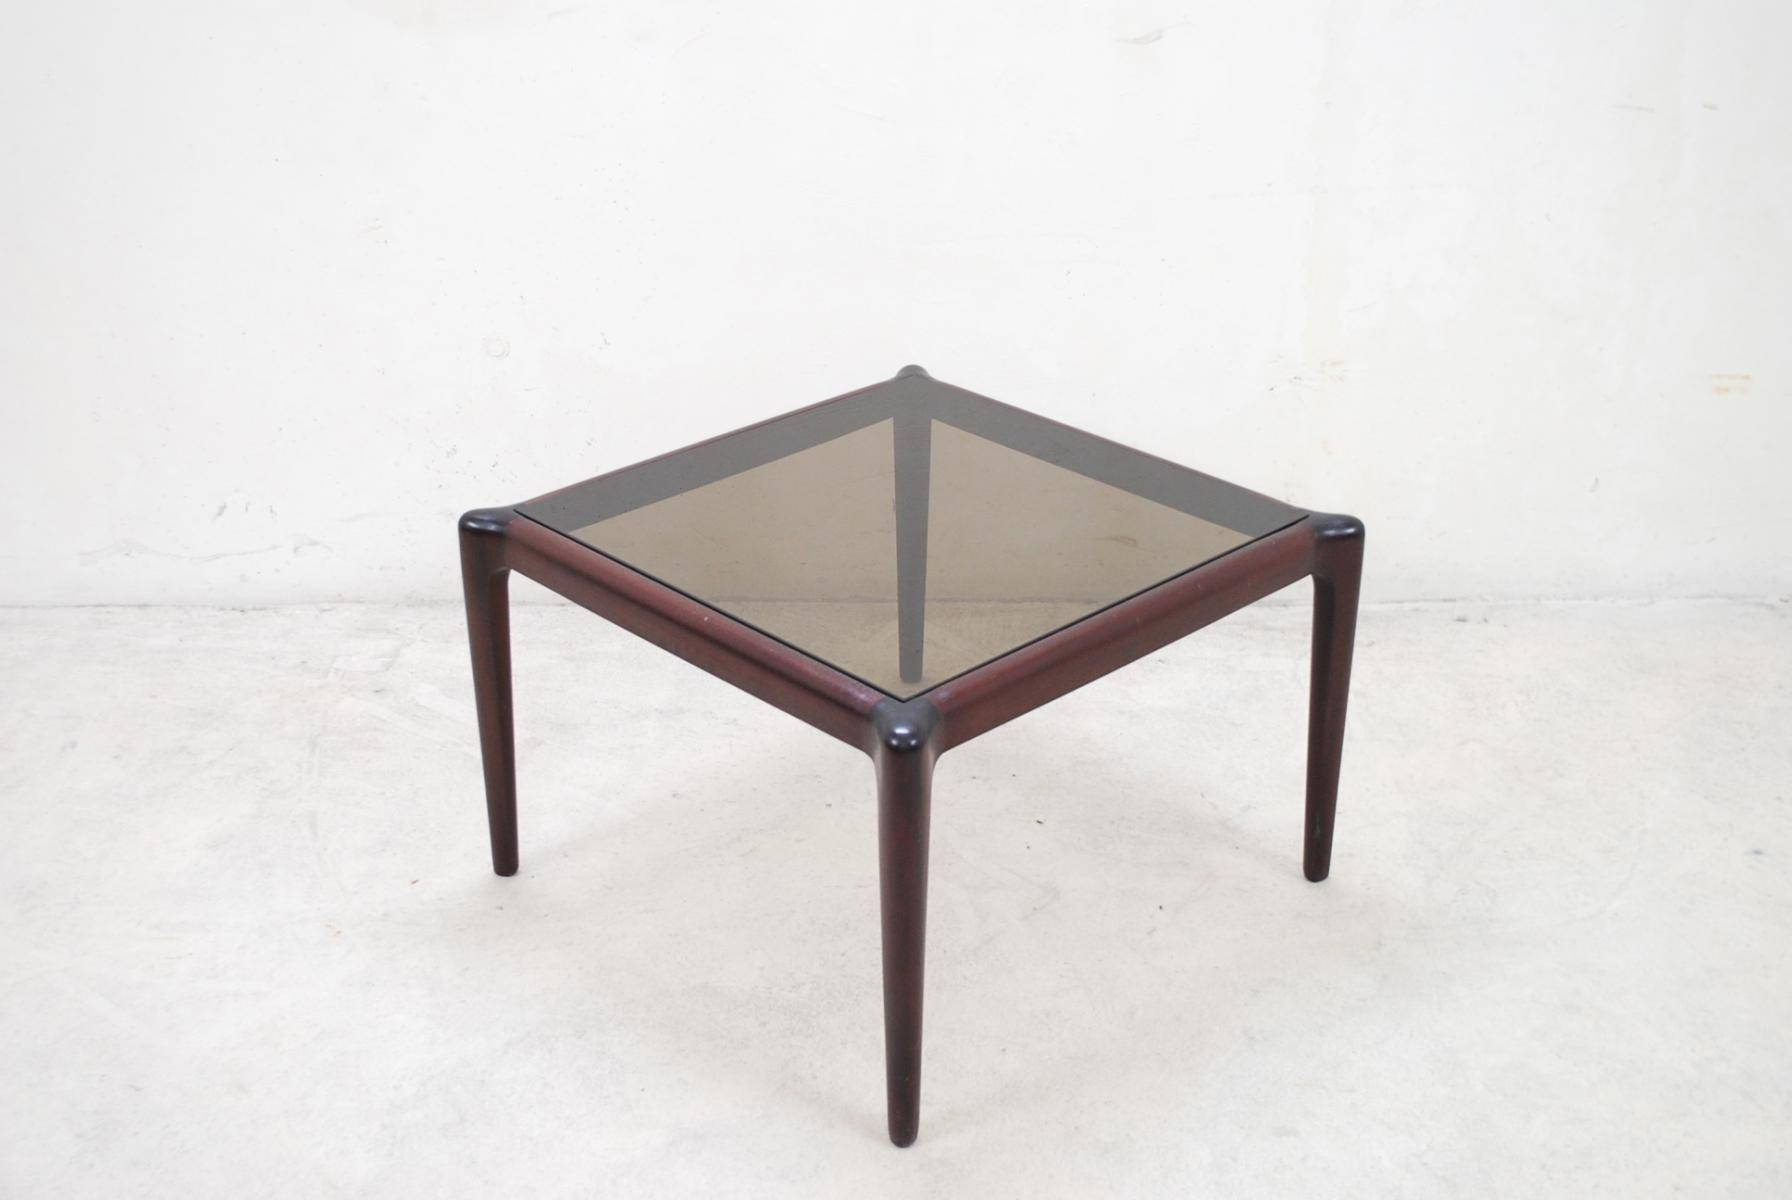 Vintage Mahogony & Smoked Glass Coffee Table For Sale At Pamono pertaining to Vintage Glass Coffee Tables (Image 25 of 30)